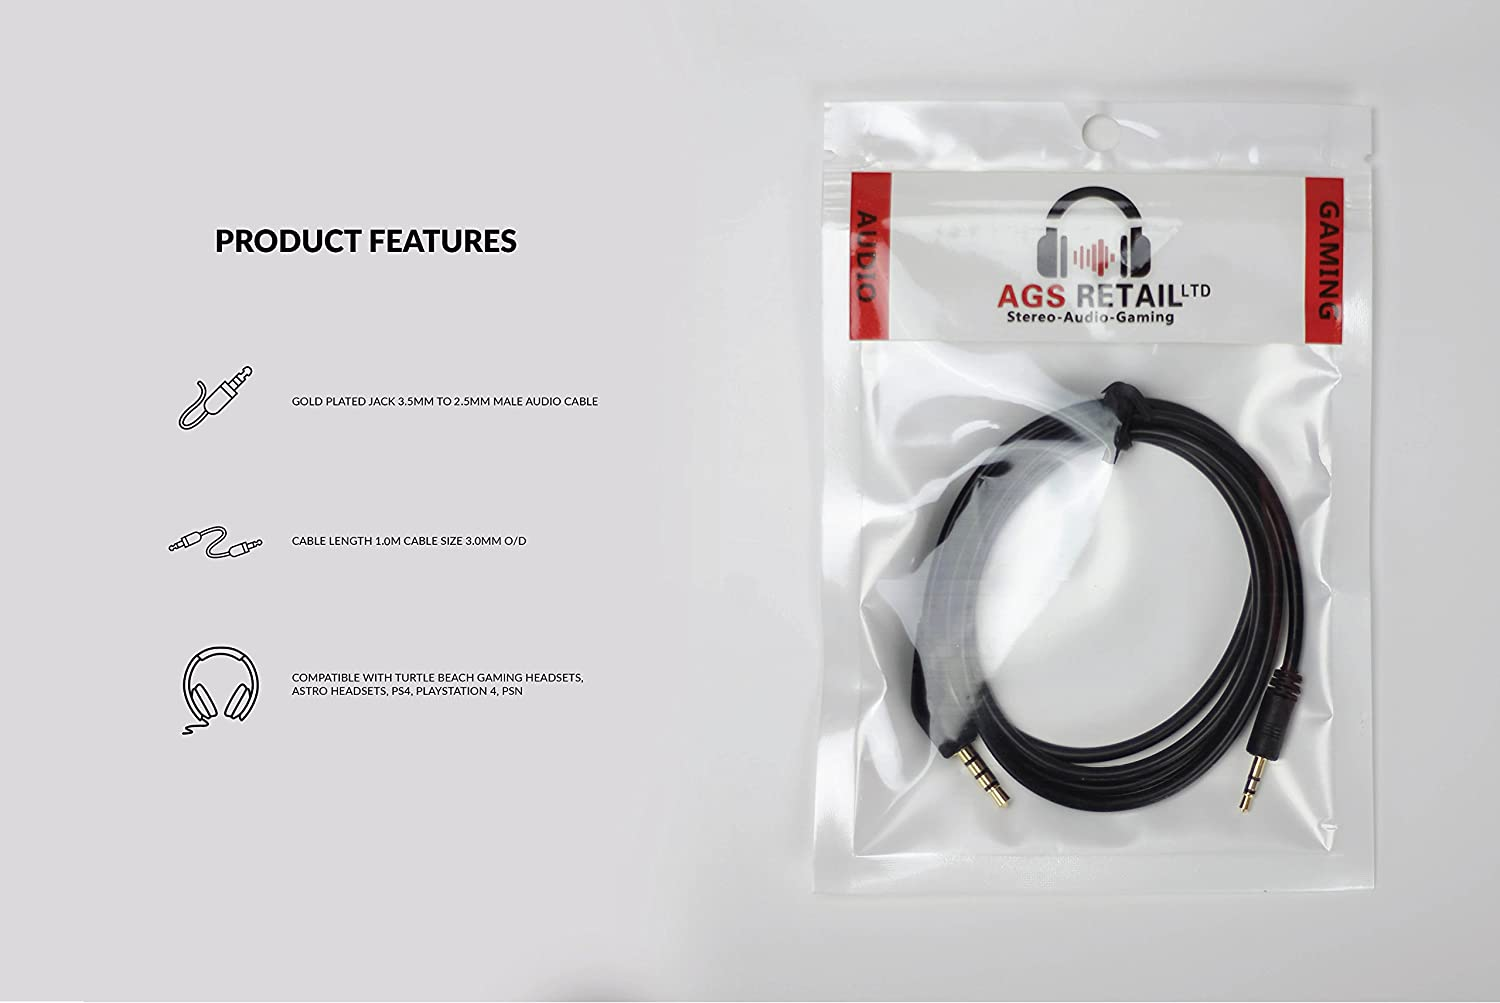 Playstation 4 PS4 Chat Talkback Cable for Astro MixAmp Astro A50 & Turtle Beach Gaming Headsets – Gold Plated: Amazon.es: Electrónica